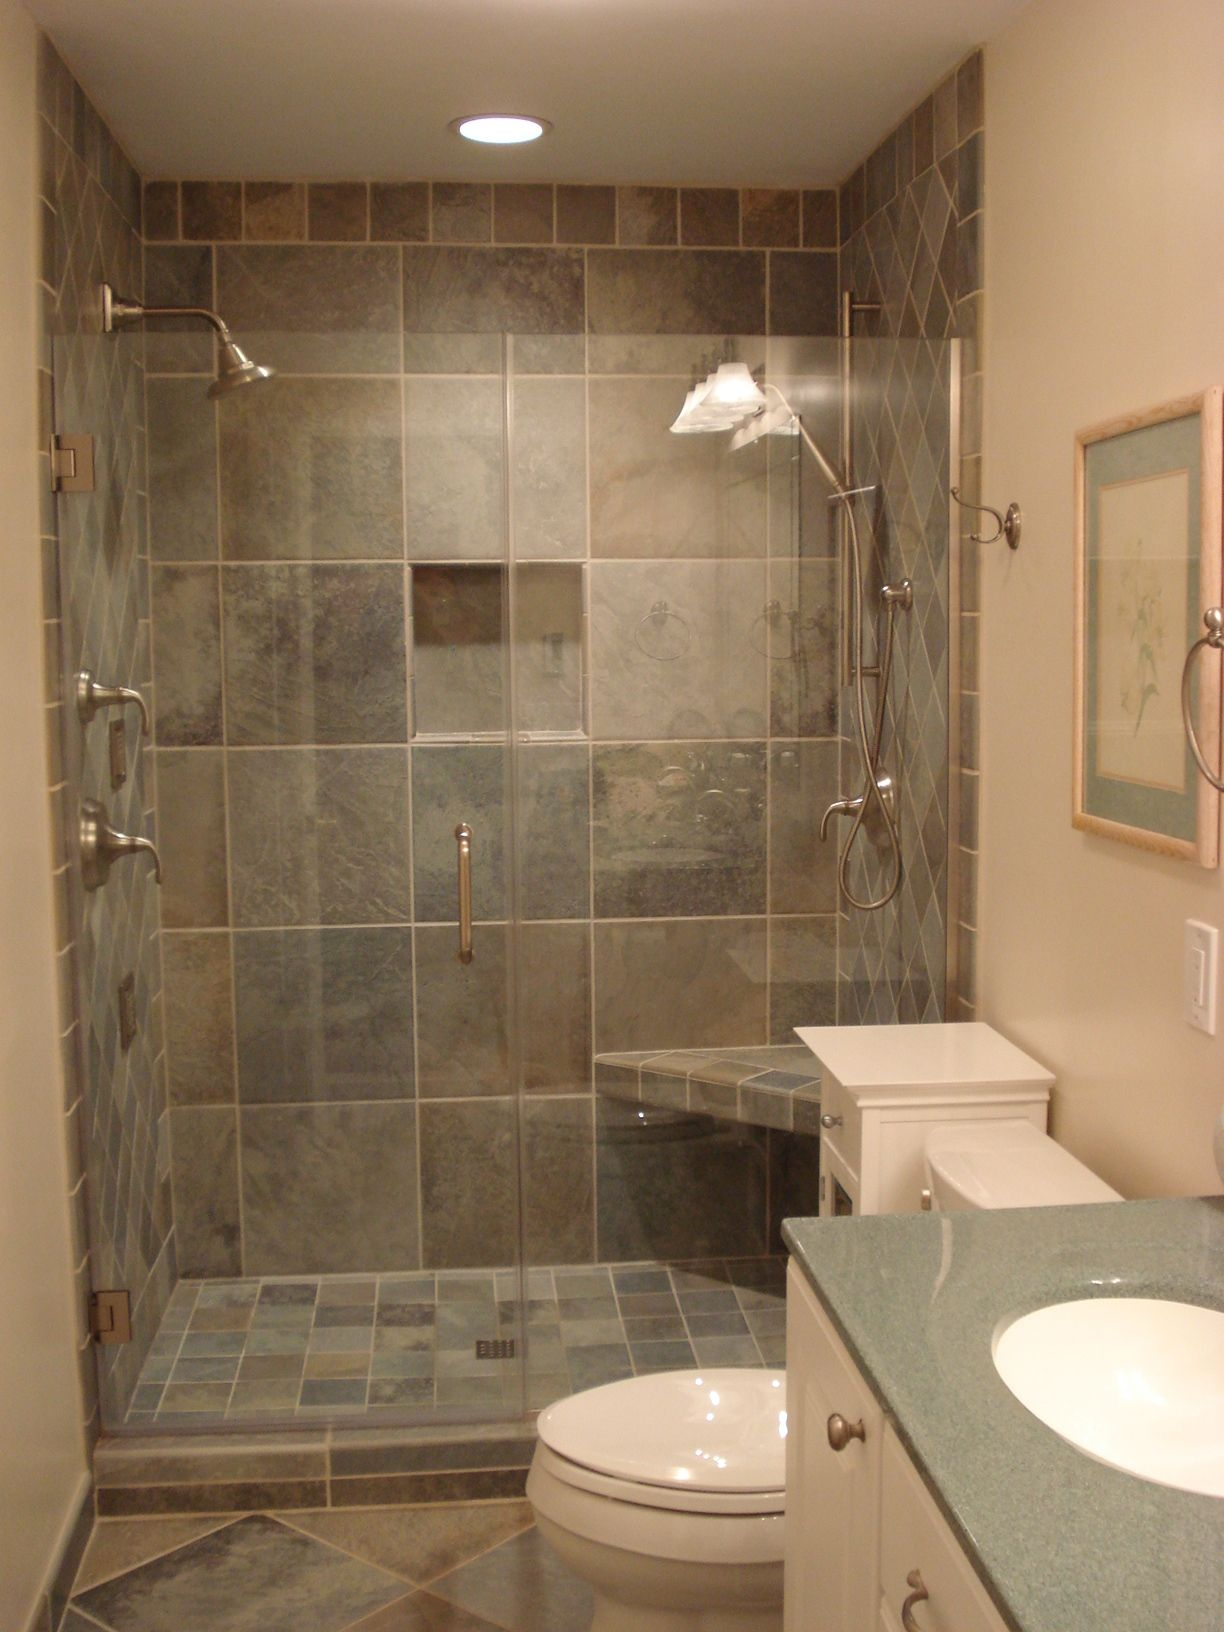 indianapolis remodeling in remodels quality carmel renovations high bathroom